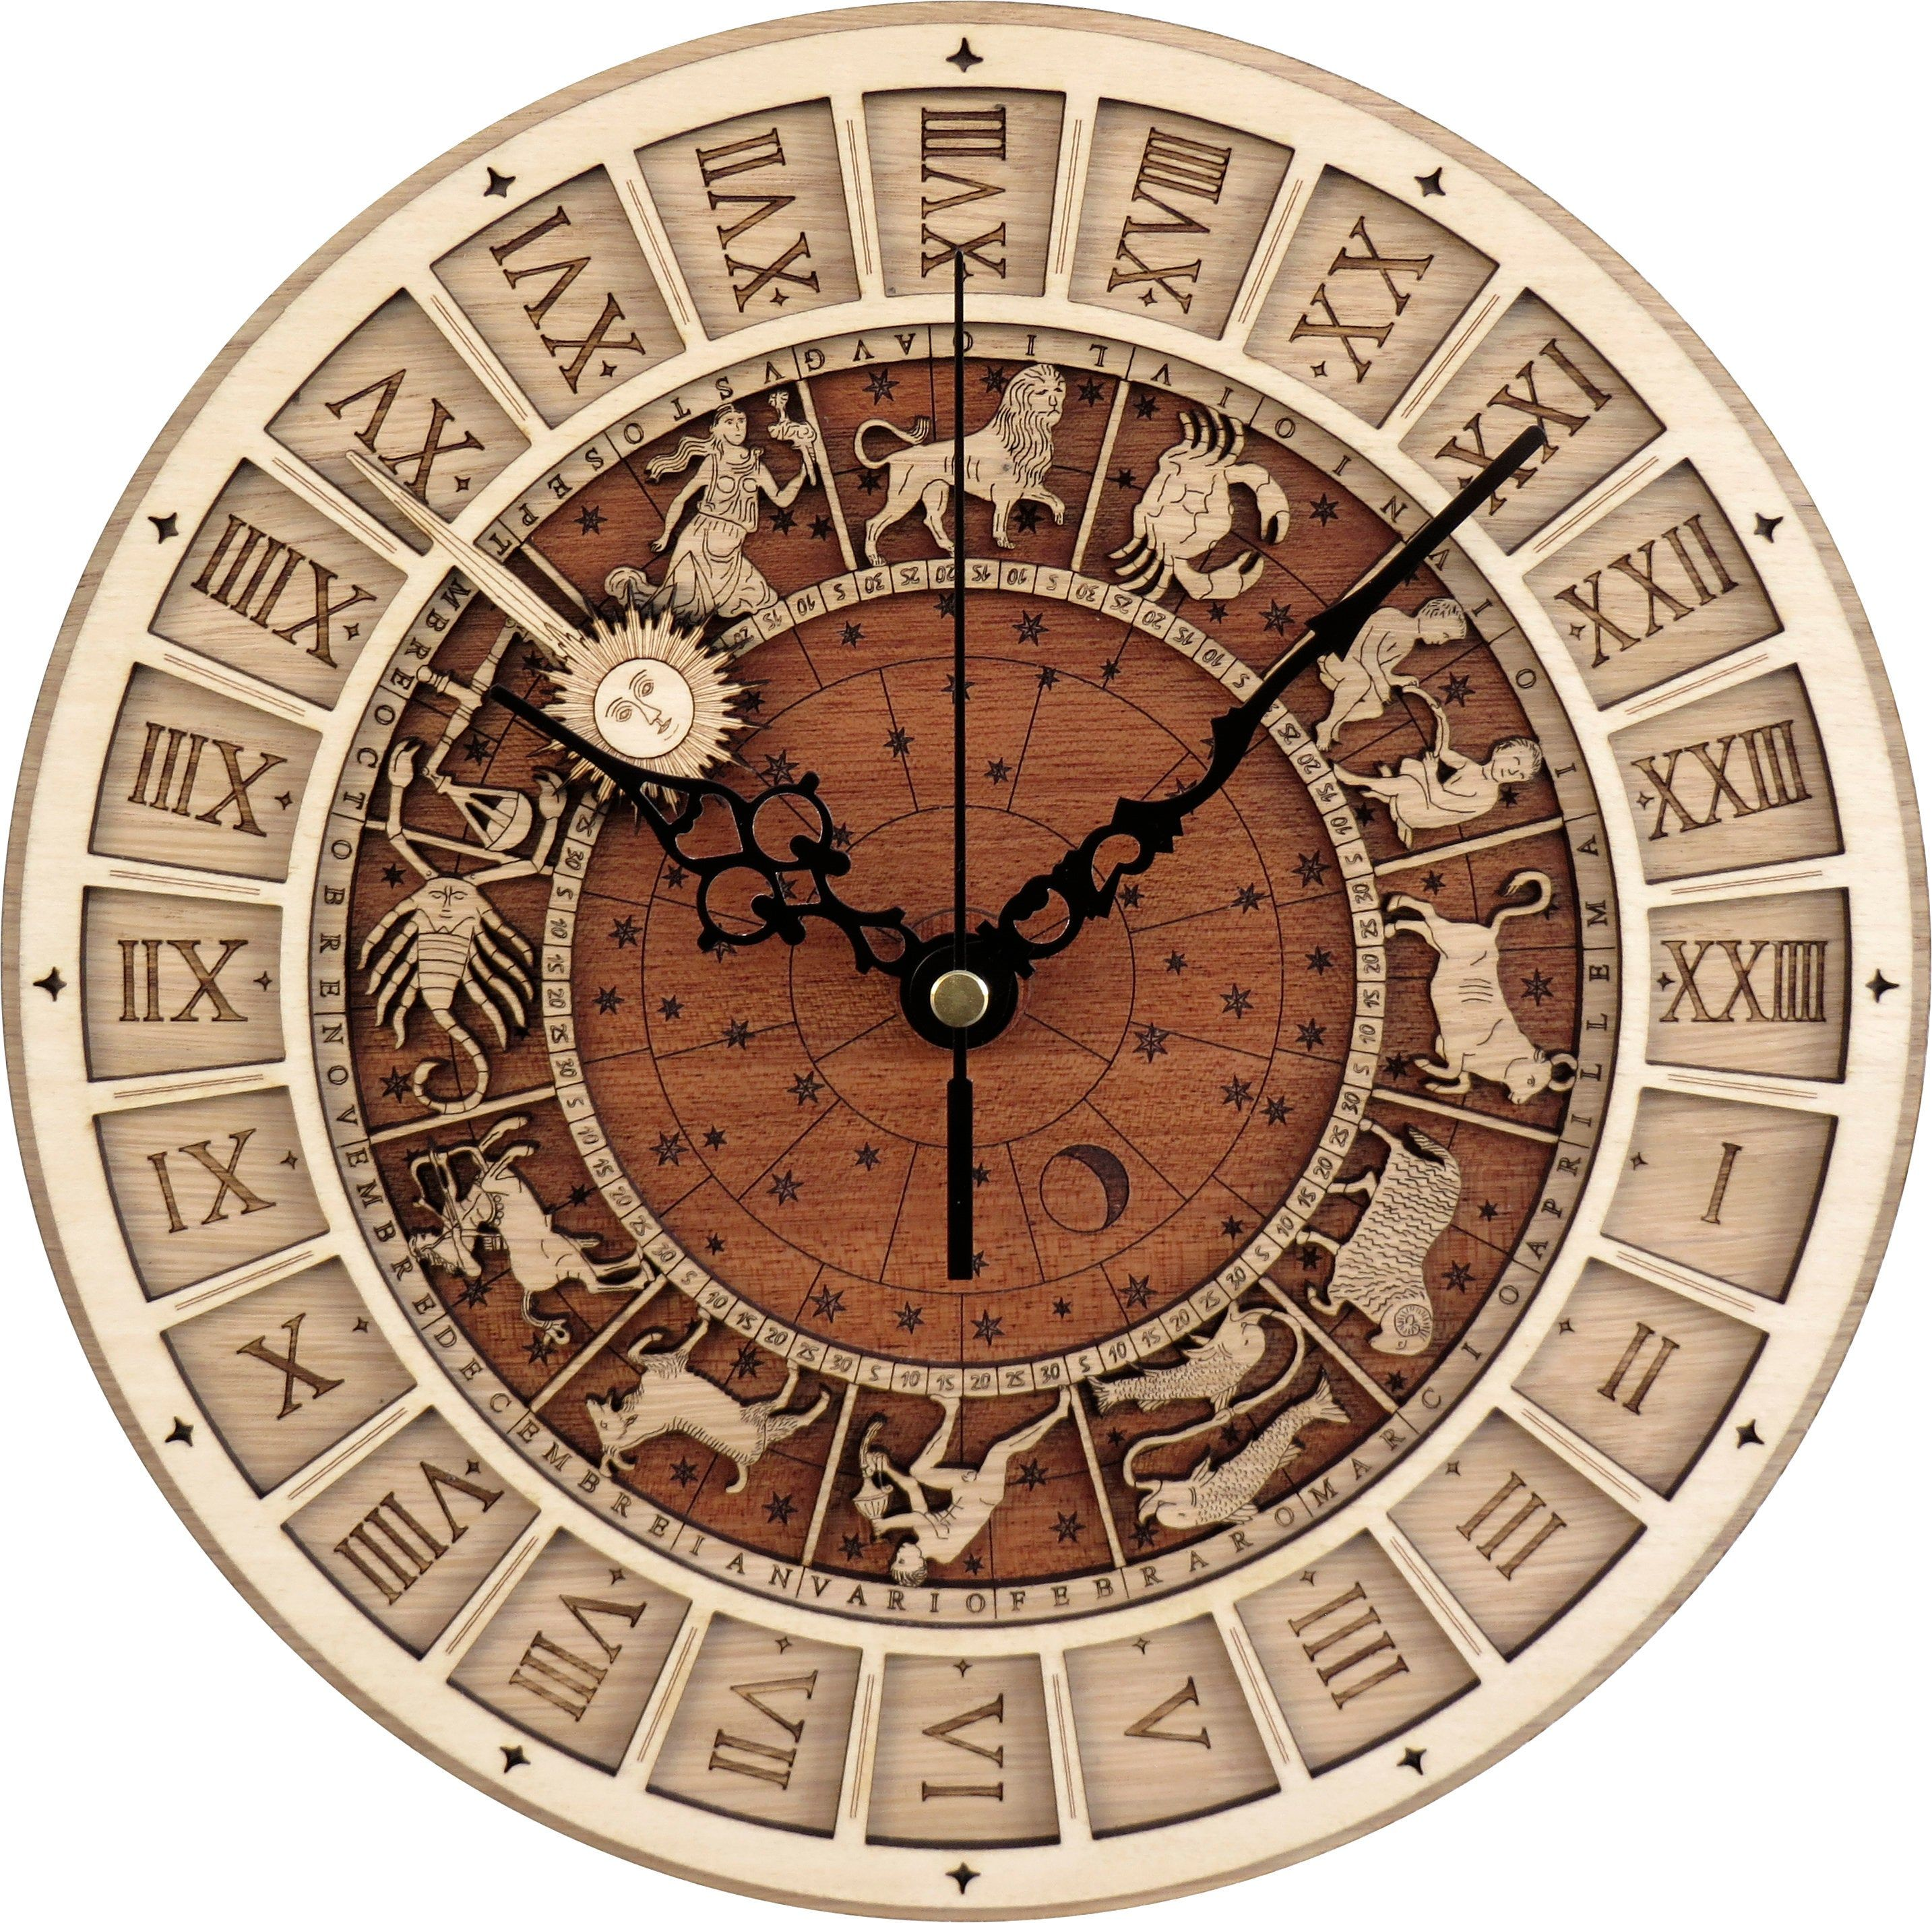 Venice Clock Venezia Clock In Wood Astronomical Clock Limited Production Shipping Included Free Shipping Relogio De Parede Parede Relogios